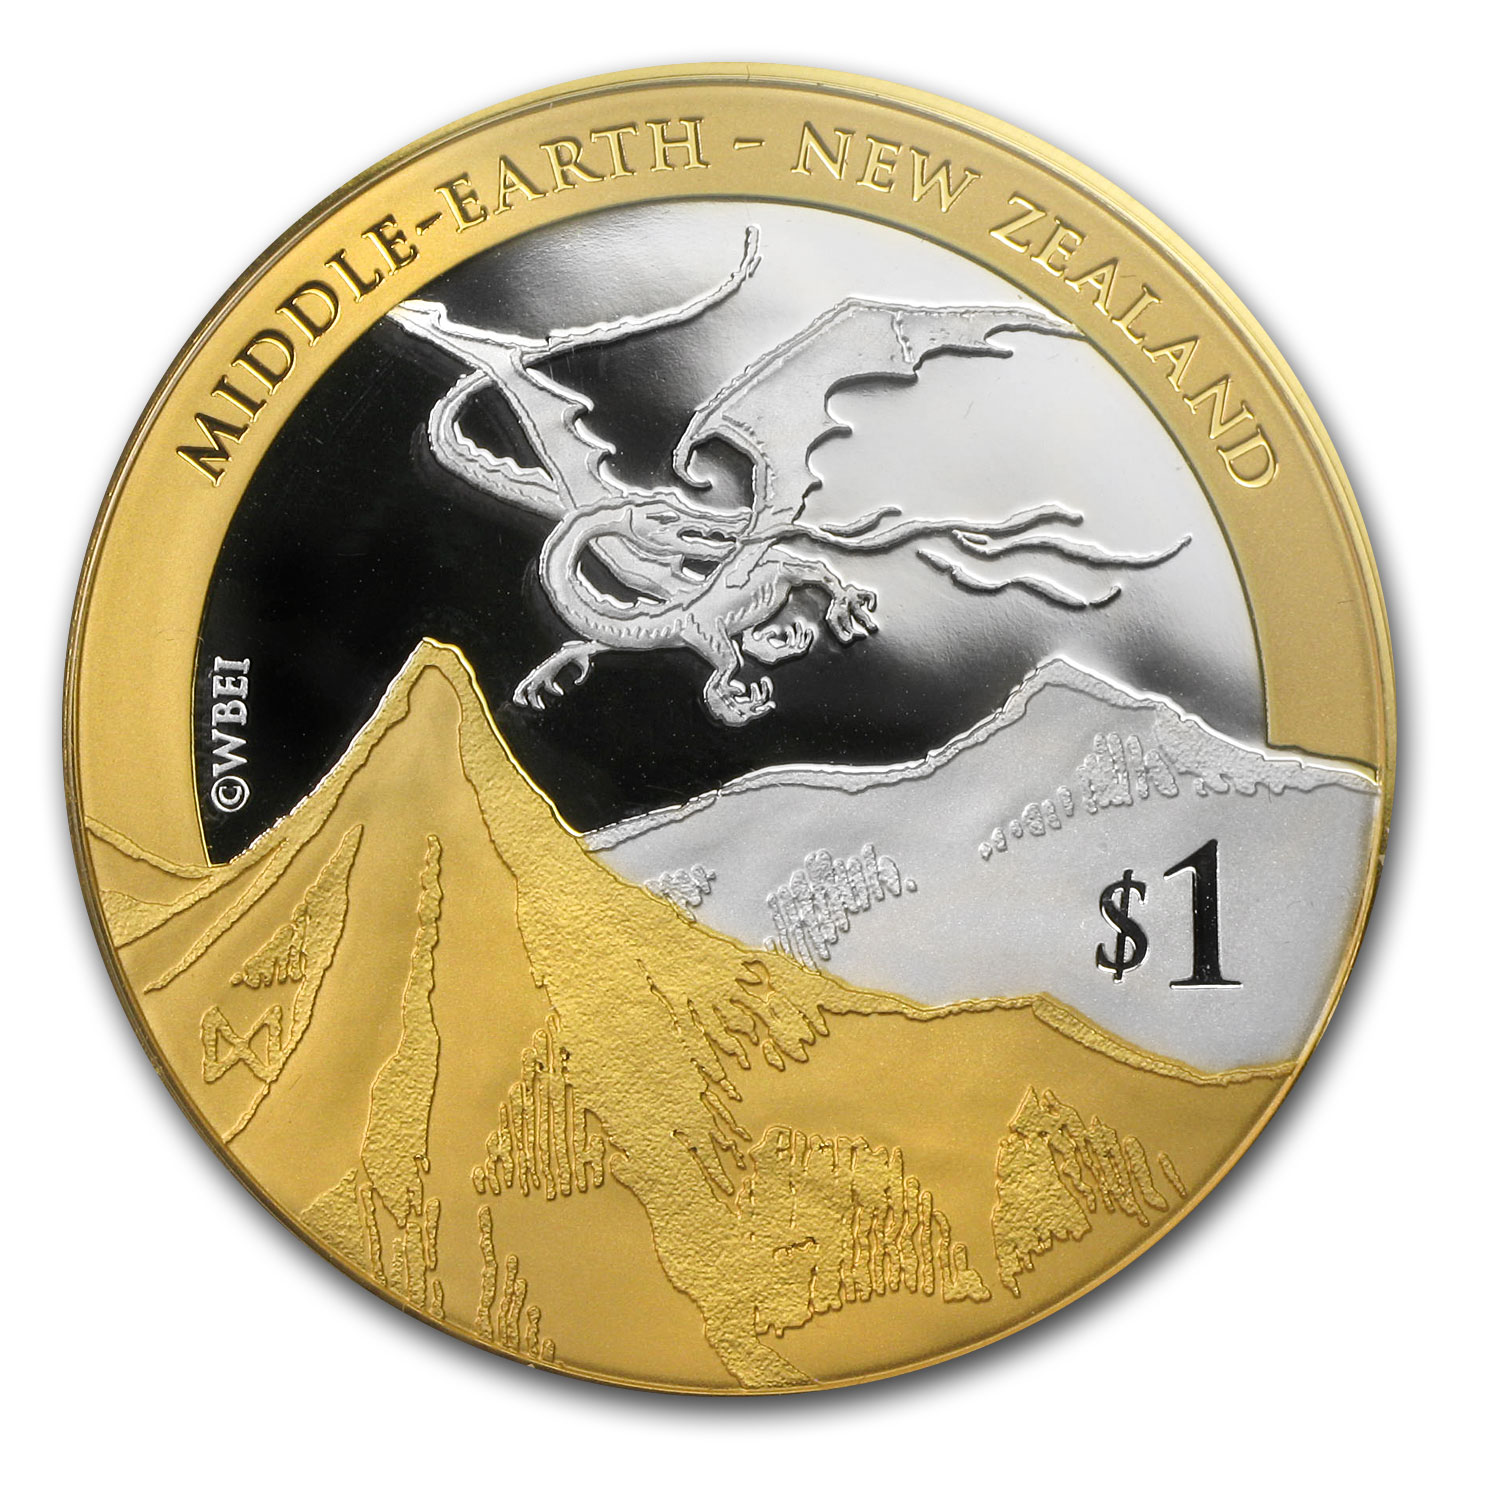 2014 New Zealand 1 oz Silver $1 Desolation of Smaug (Gold Plated)